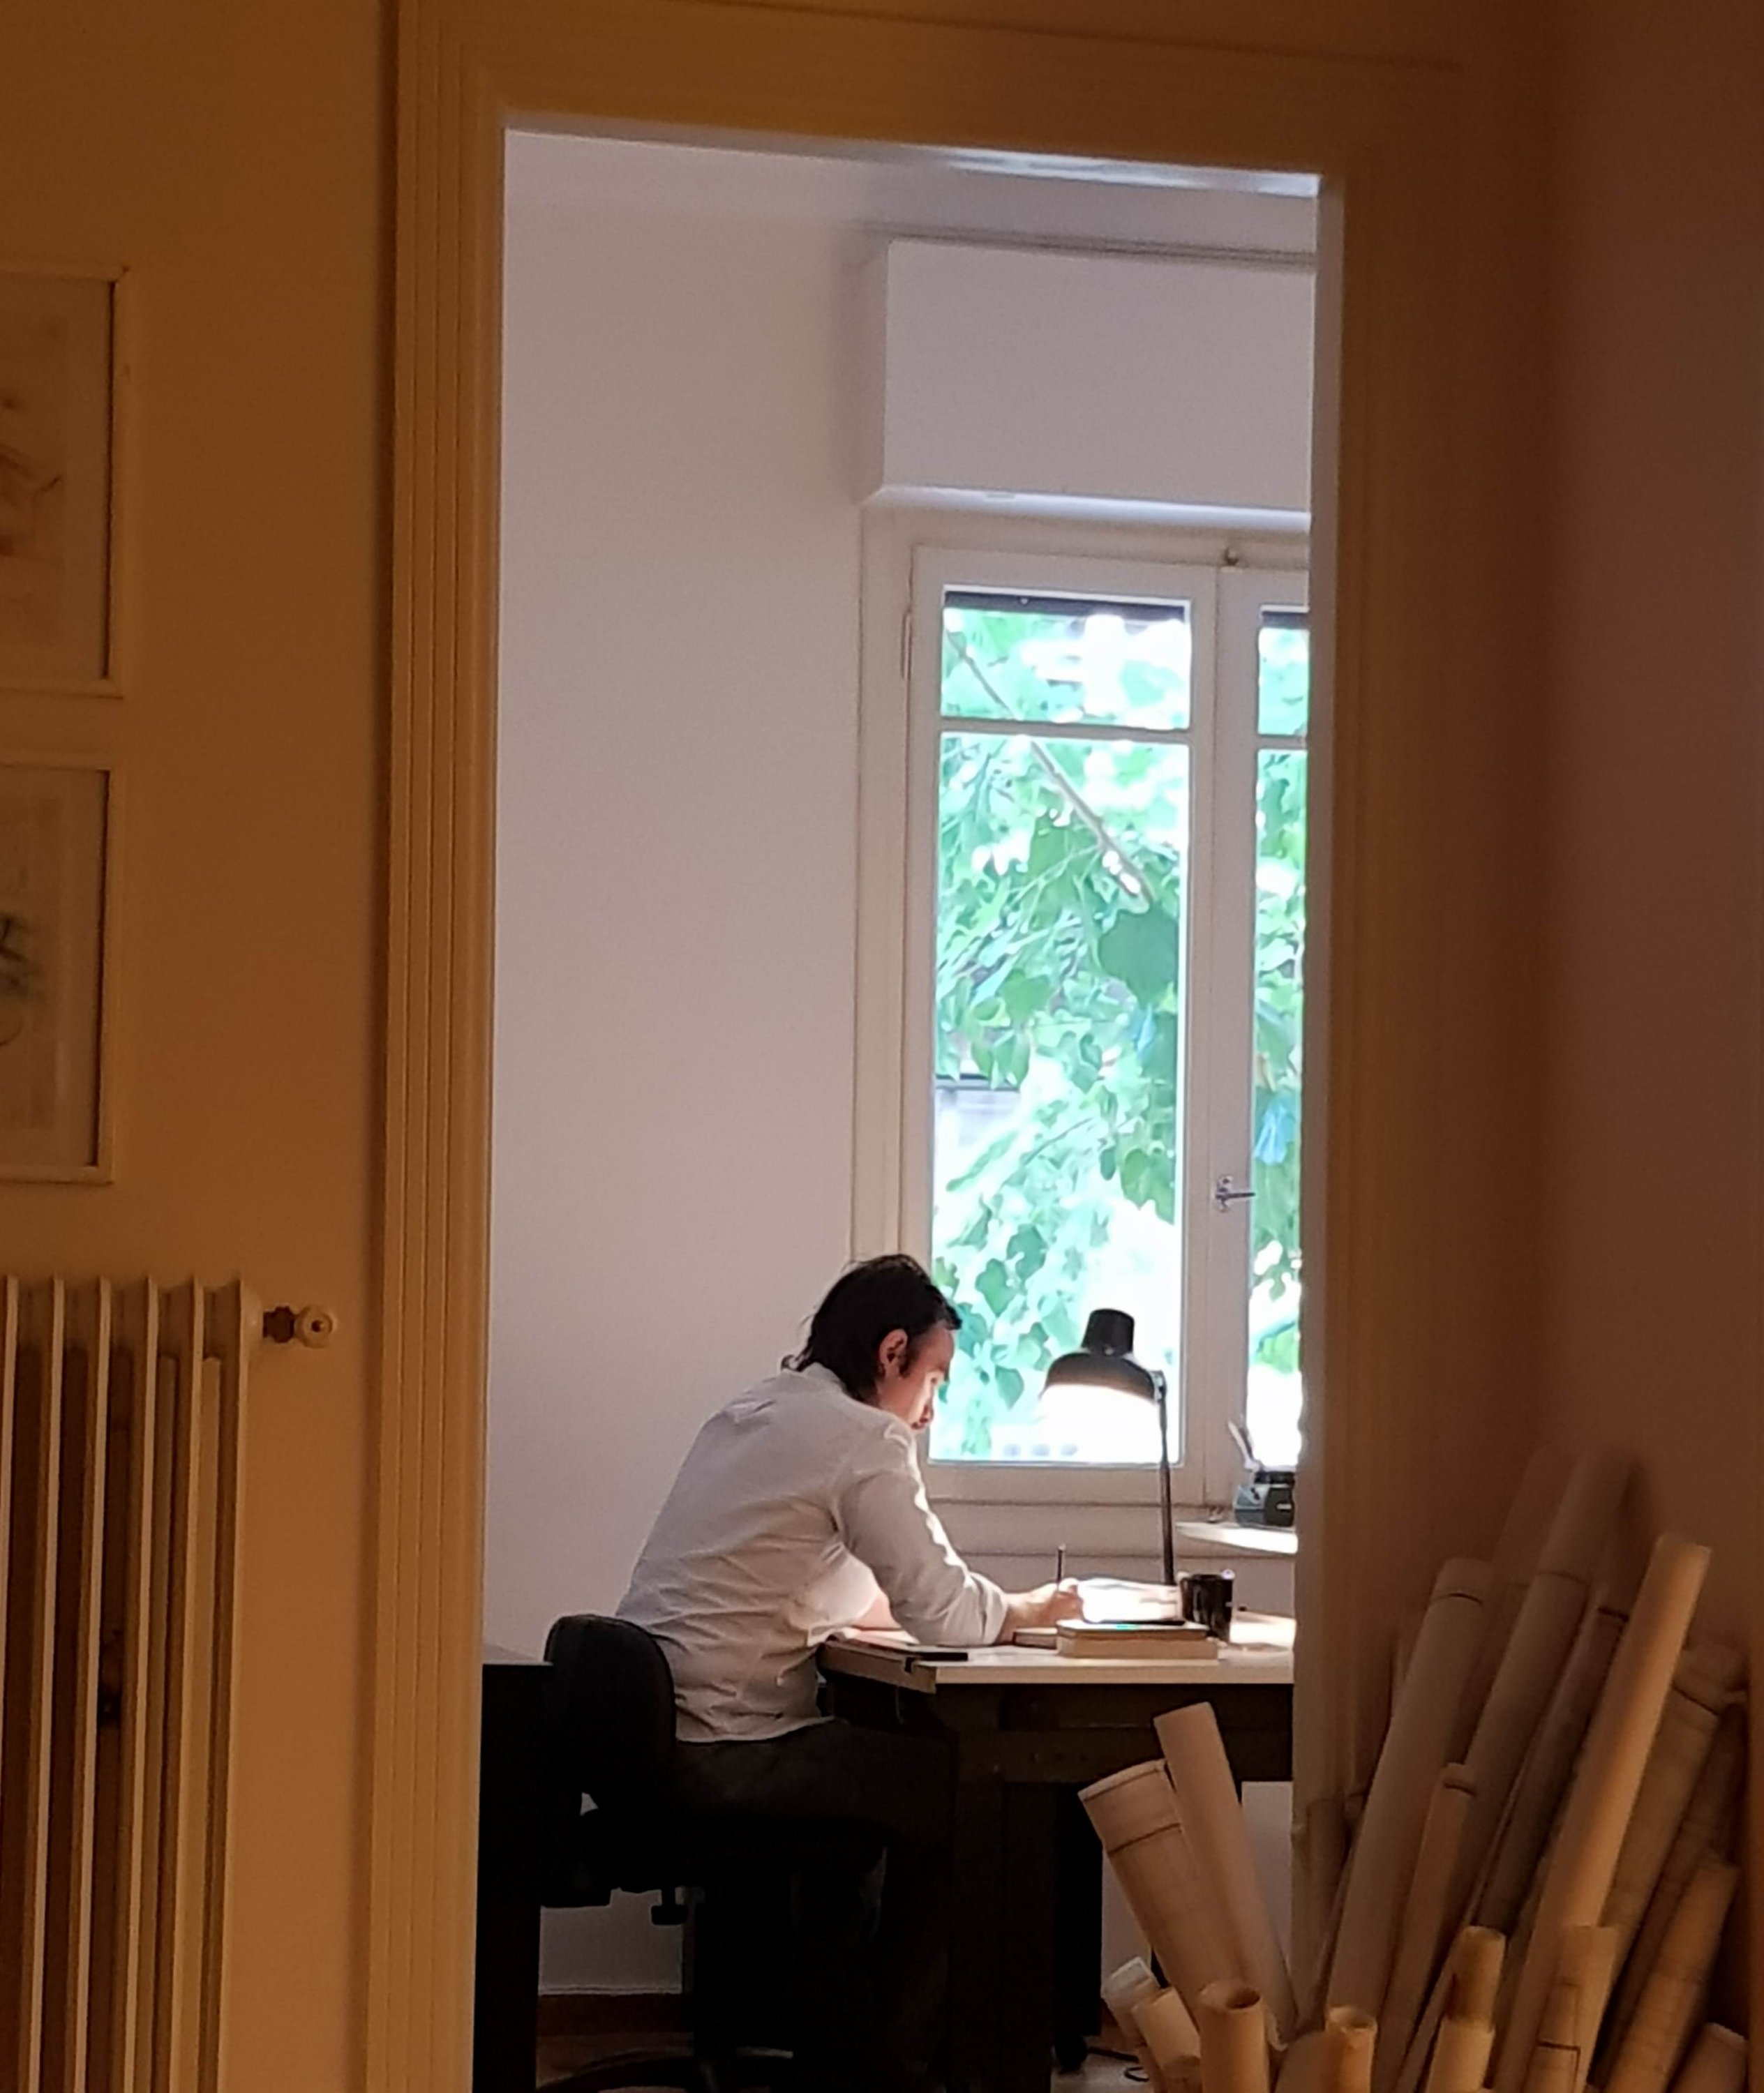 Christopher troy writing